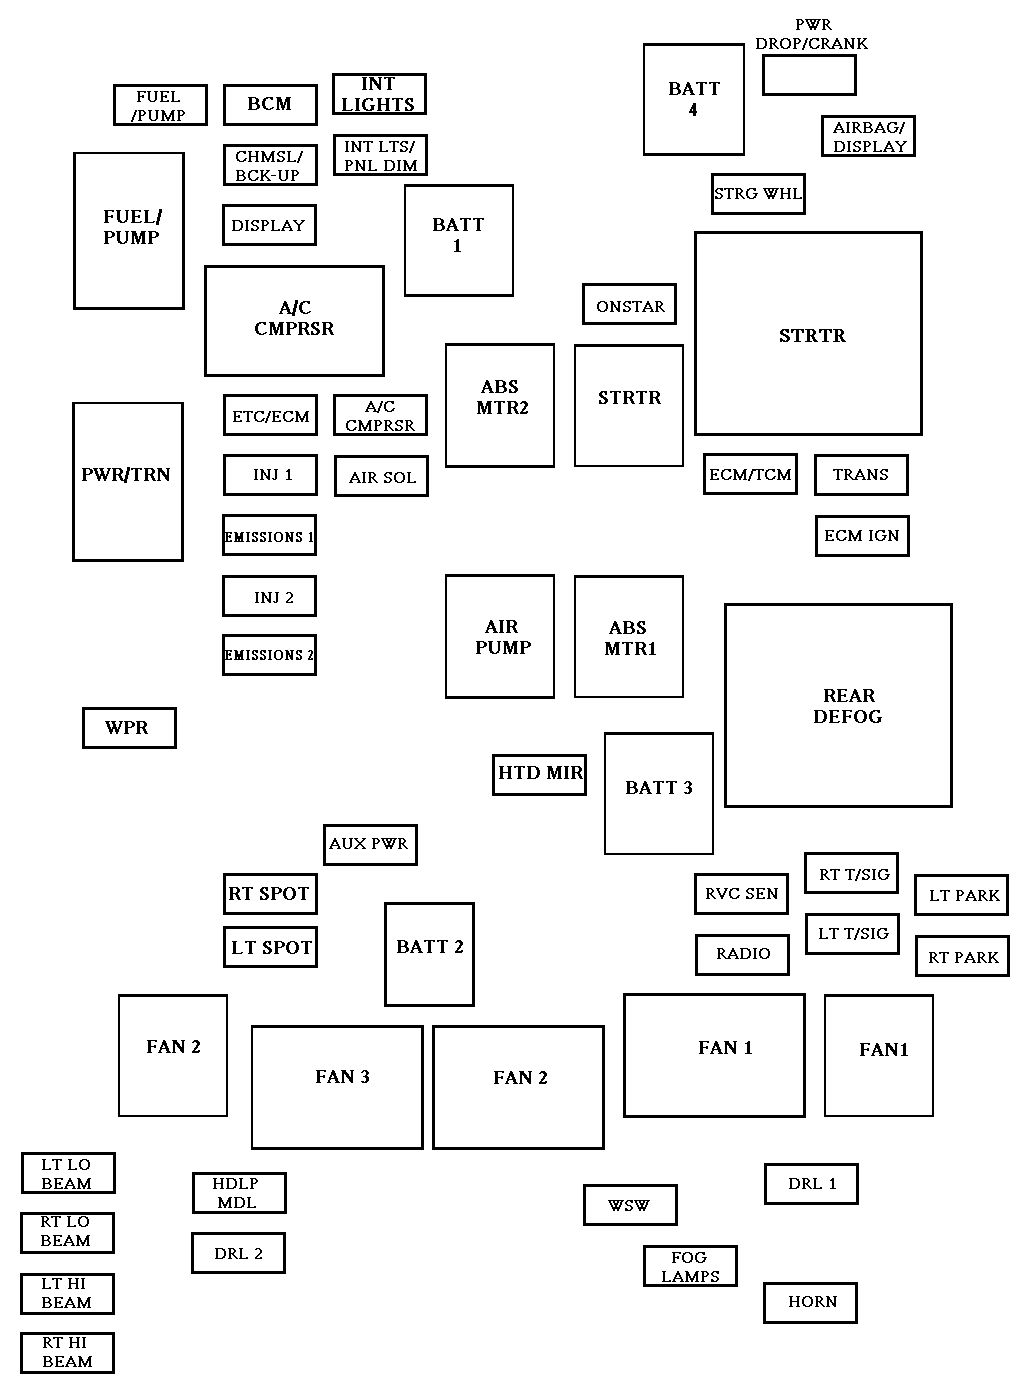 fuse diagram for 1959 chevy impala wiring diagram 1967 chevy impala fuse box just wiring diagram2006 [ 1025 x 1388 Pixel ]